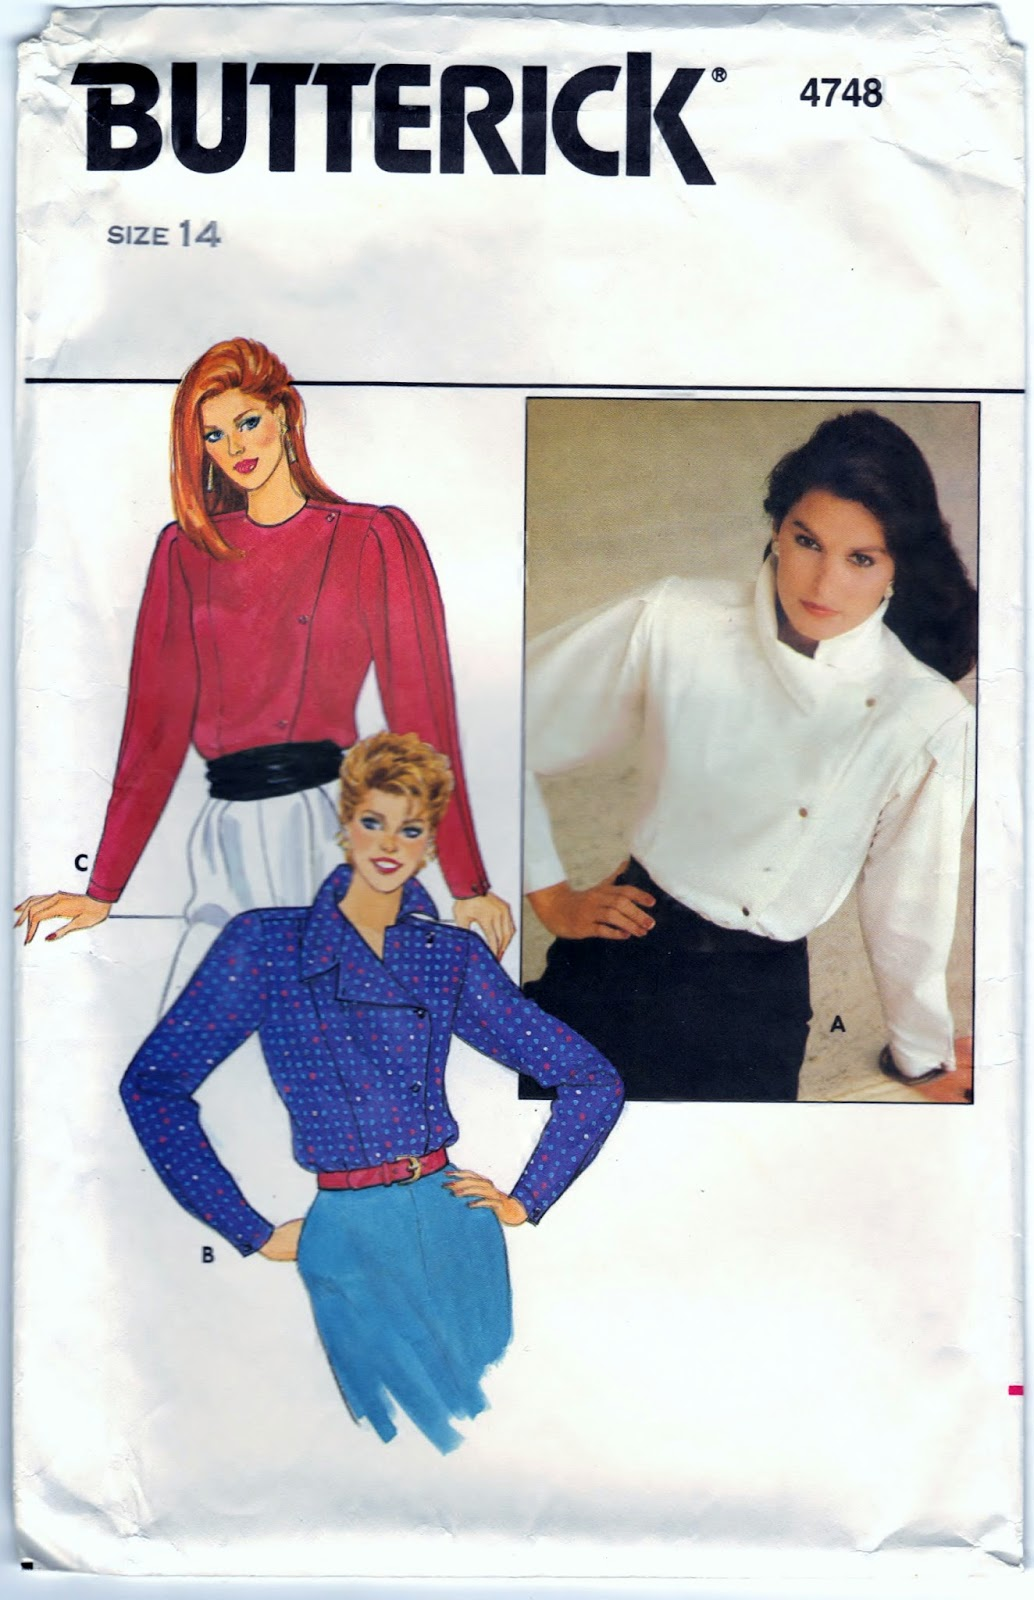 https://www.etsy.com/listing/222931077/vintage-butterick-4748-sewing-craft?ref=shop_home_active_1&ga_search_query=4748